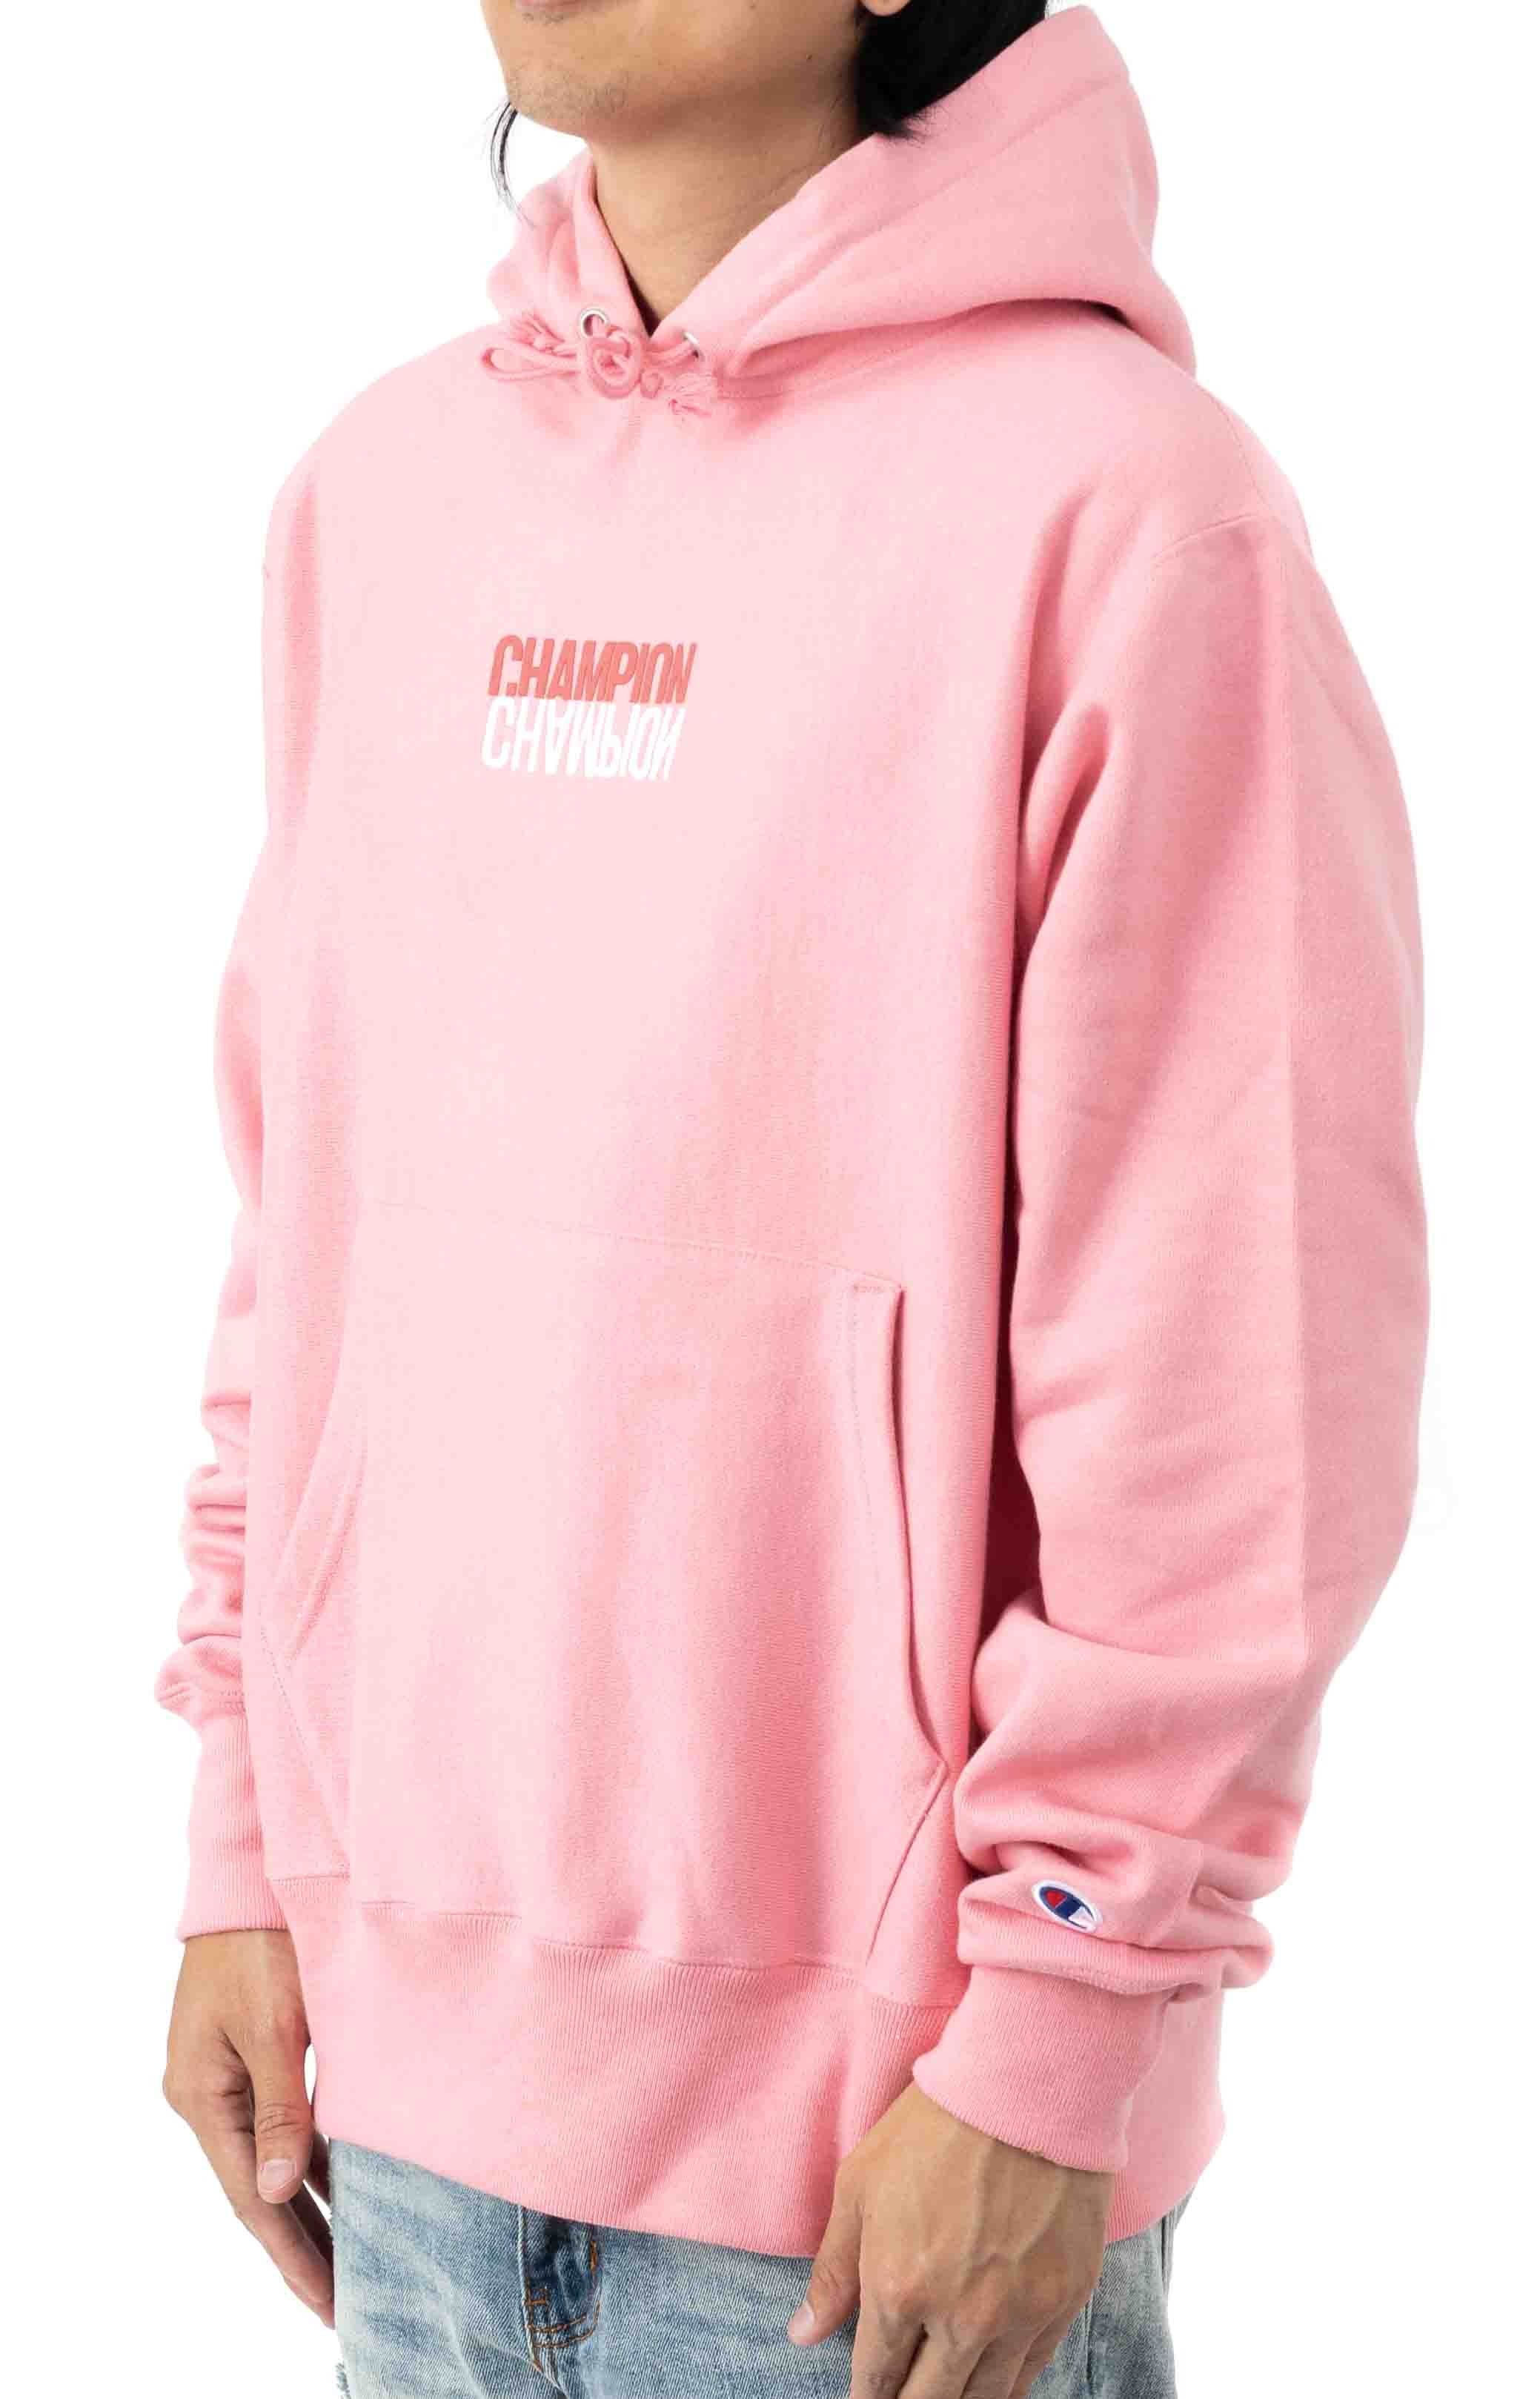 Reflective Logo Pullover Hoodie - Guava Pink 2